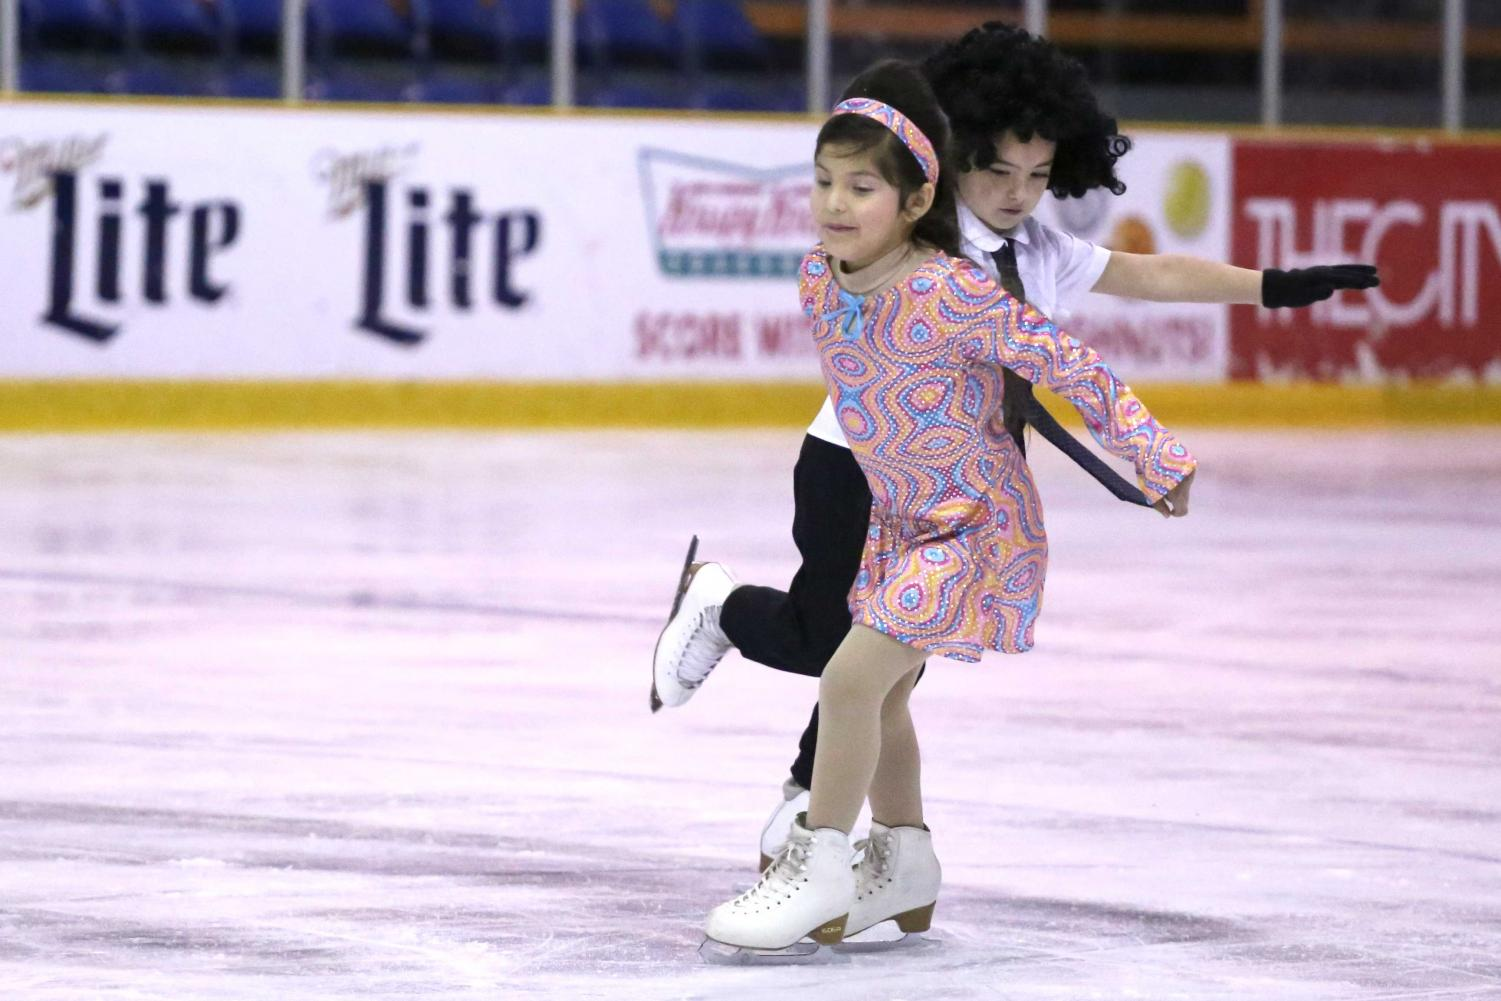 Kids+can+start+figure+skating+classes+at+a+very+young+age.